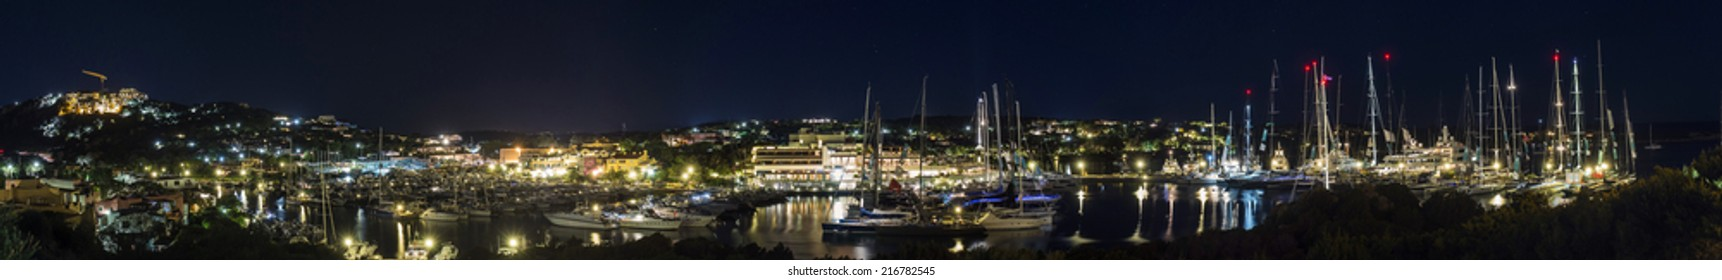 porto cervo by night